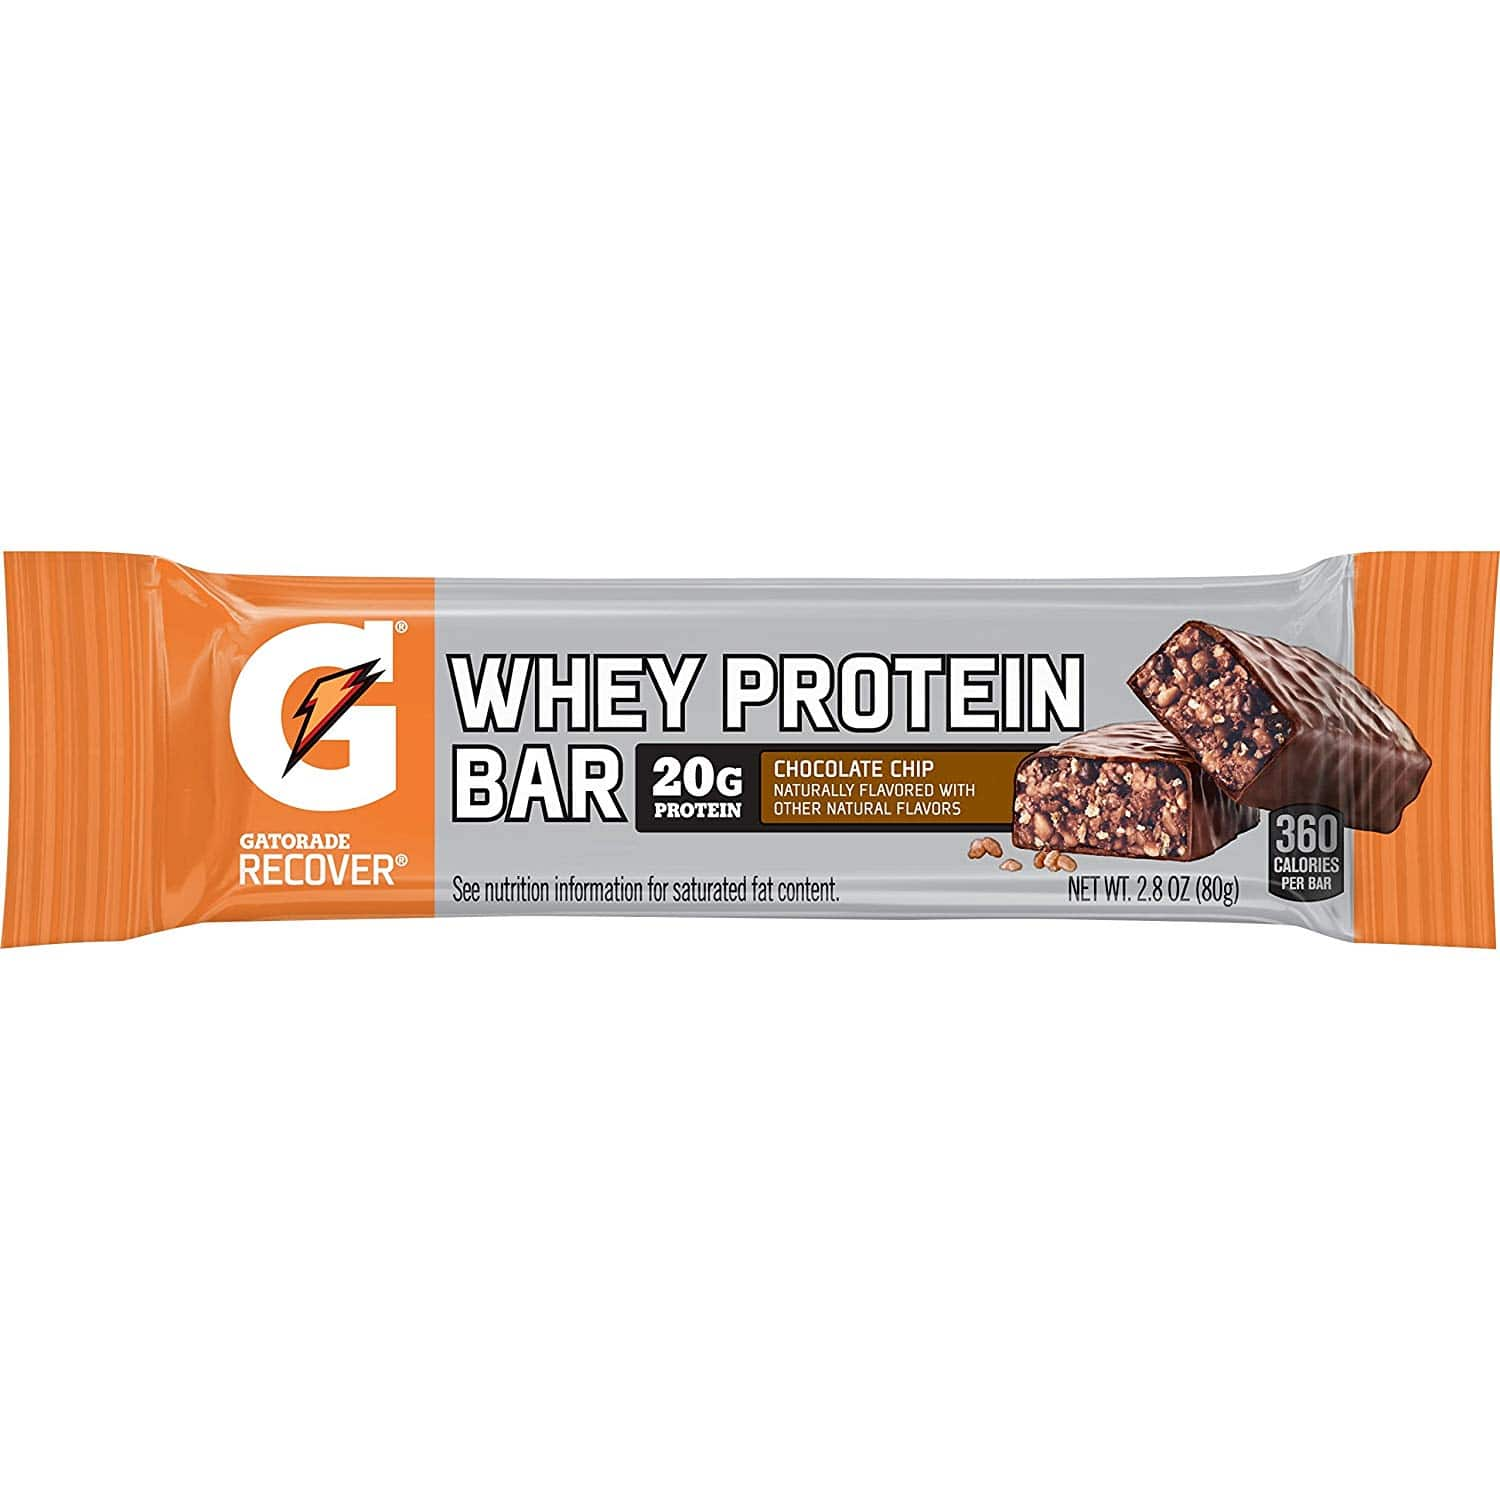 12-Count Gatorade Whey Protein Recover Bars (Chocolate Chip) 2.8 ounce bars $10.73 5% or $9.60 15% w/s&s